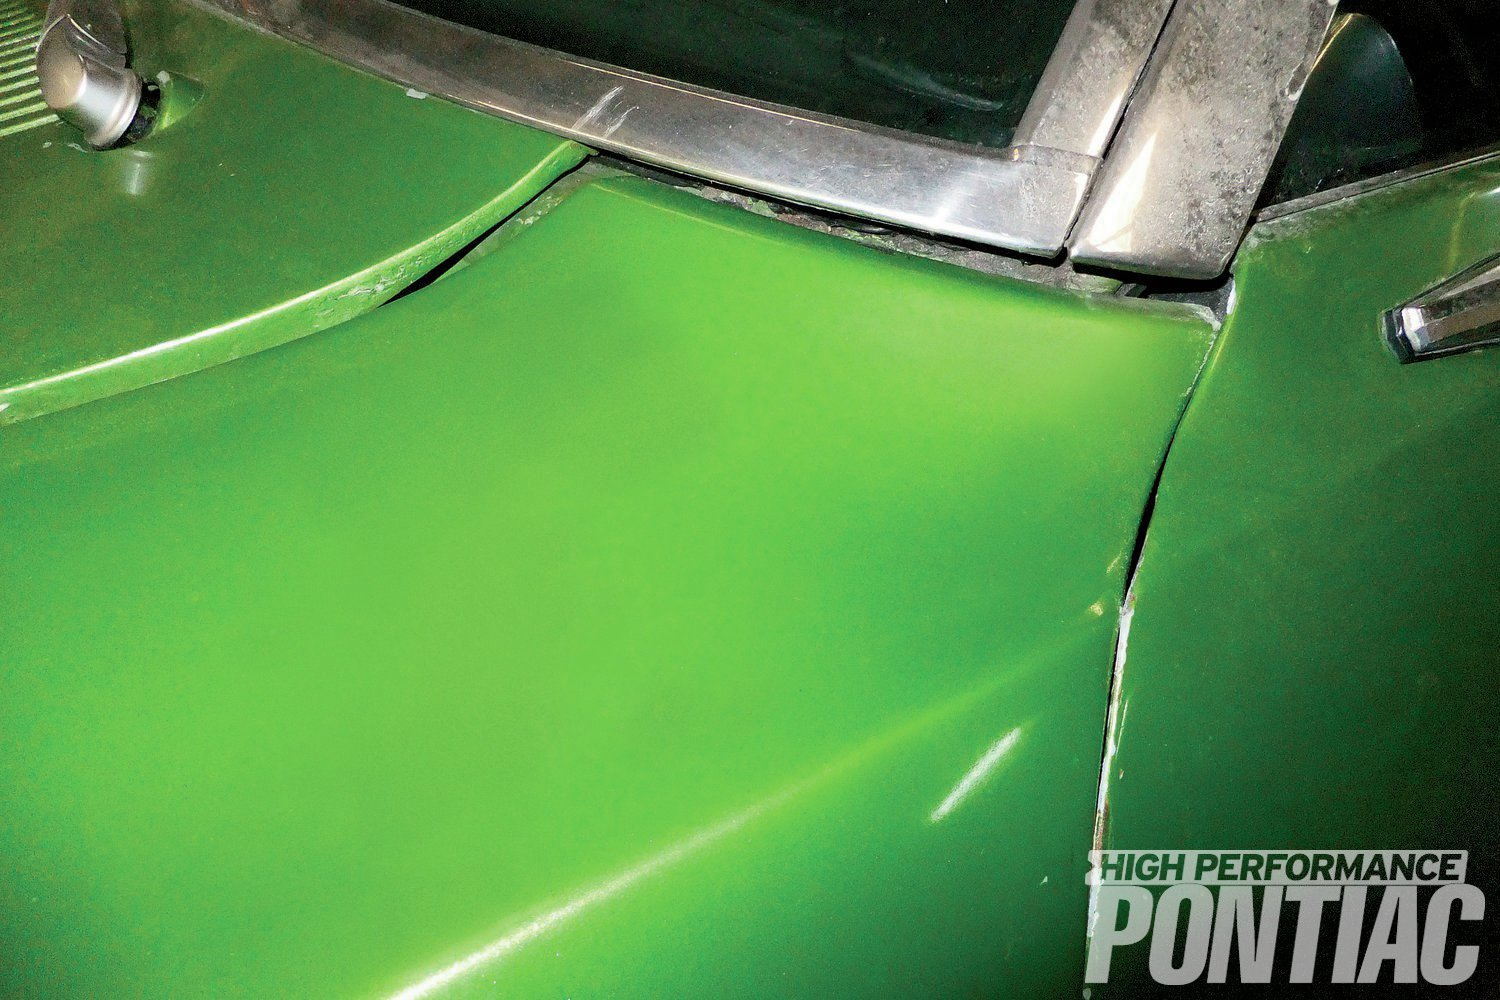 4. The large gap at the cowl panel and the tight gap between the fender and door shows how much the fender has moved both outward and backwards towards the driver-side door.